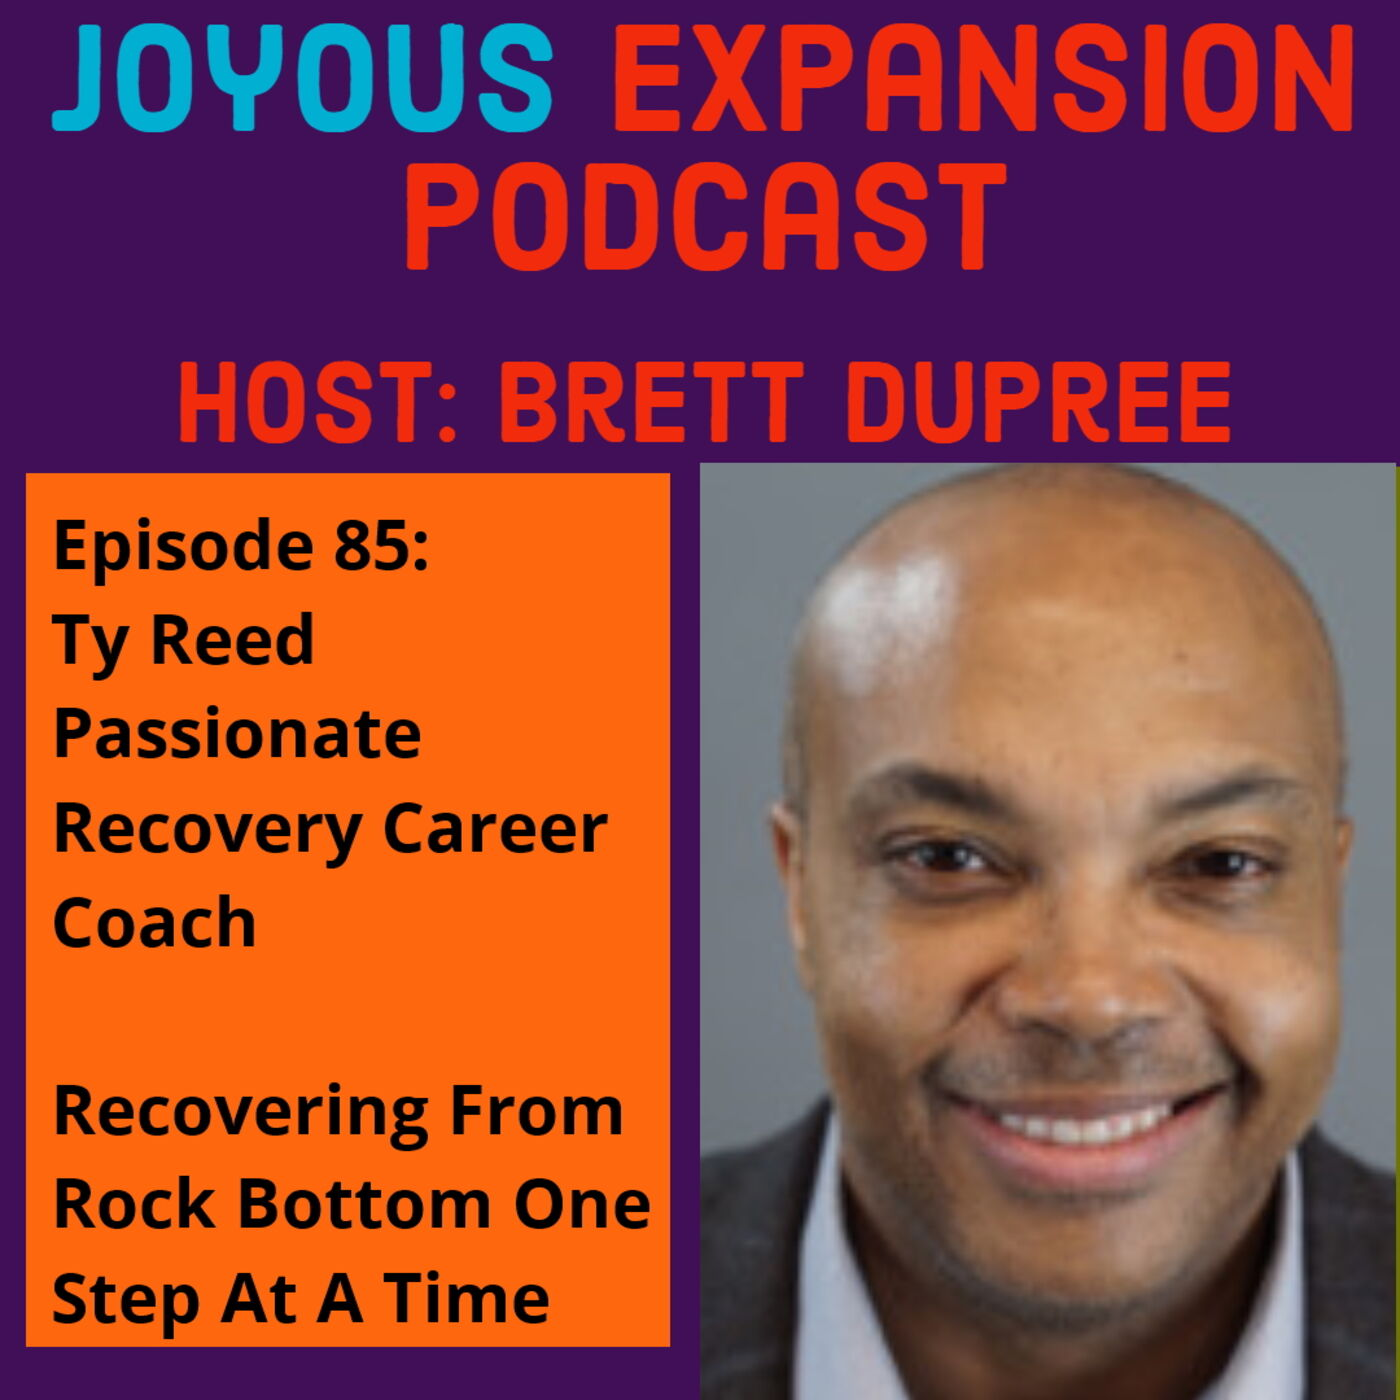 Joyous Expansion #85 - Ty Reed, Passionate Recovery Career Coach  - Recovering From Rock Bottom One Step At A Time